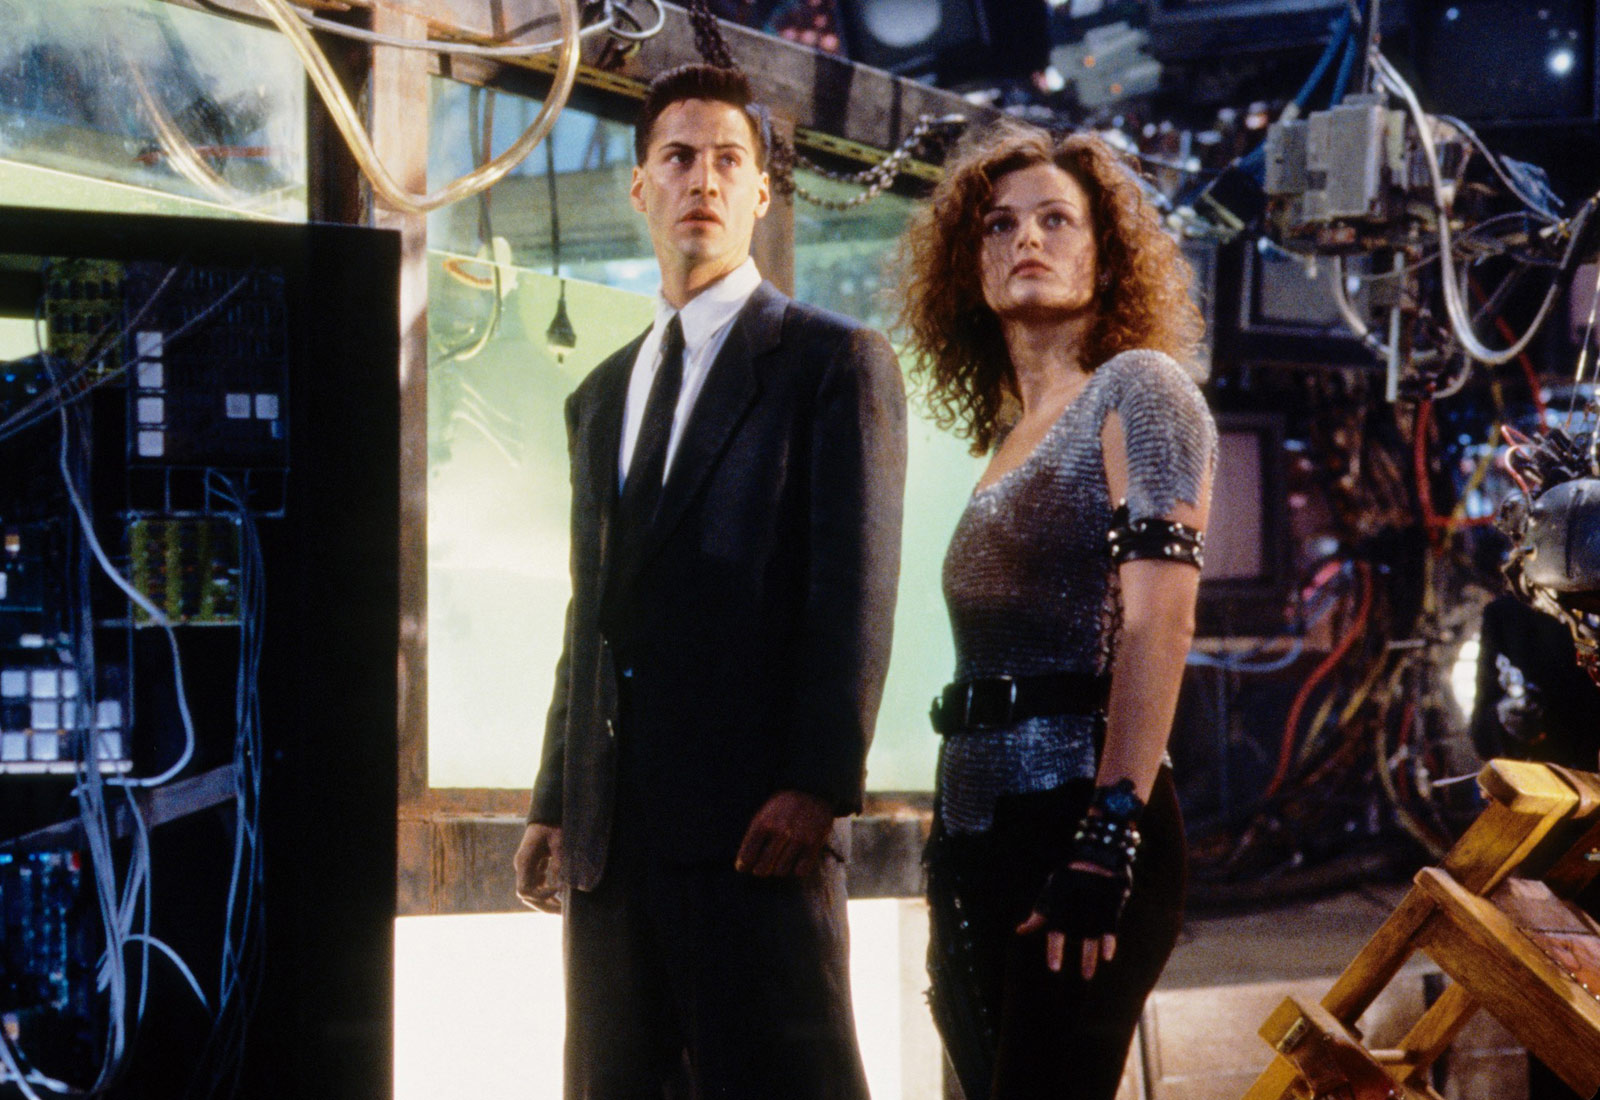 All the Things 1995's 'Johnny Mnemonic' Got Right About Life in 2021 | KQED